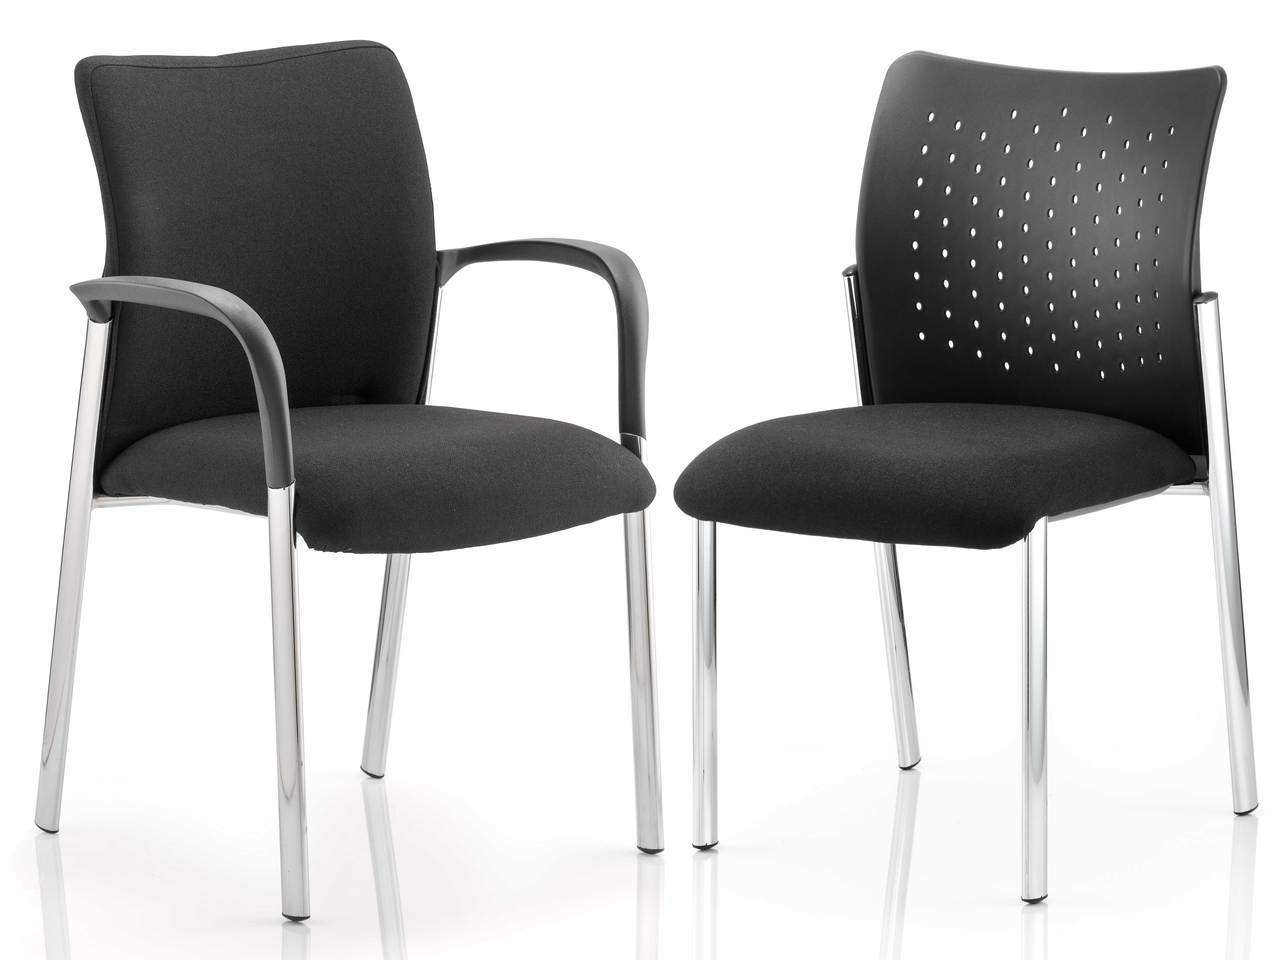 Academy Visitor Meeting Chair in Black